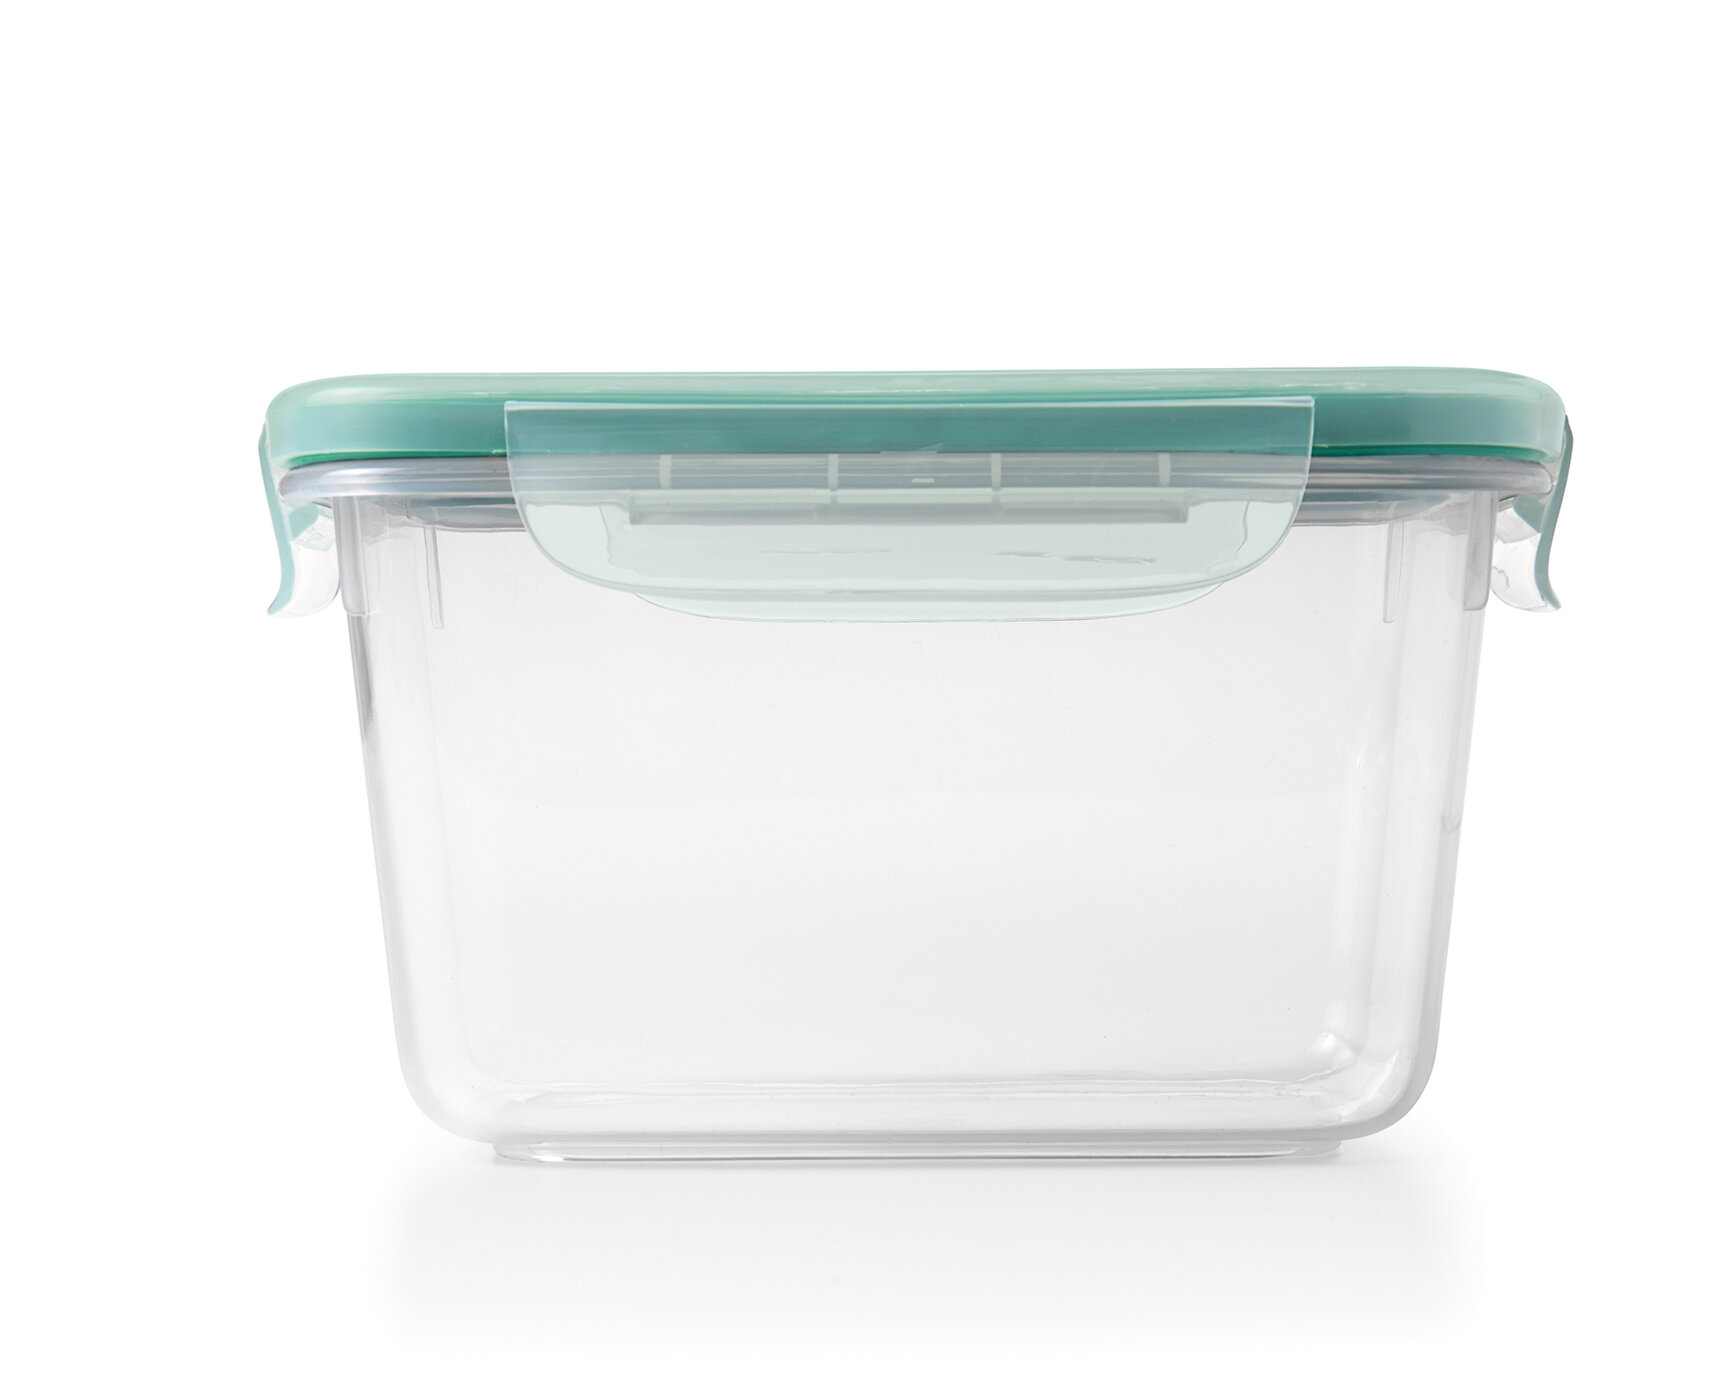 SNAP 4960 Oz Food Storage Container AllModern